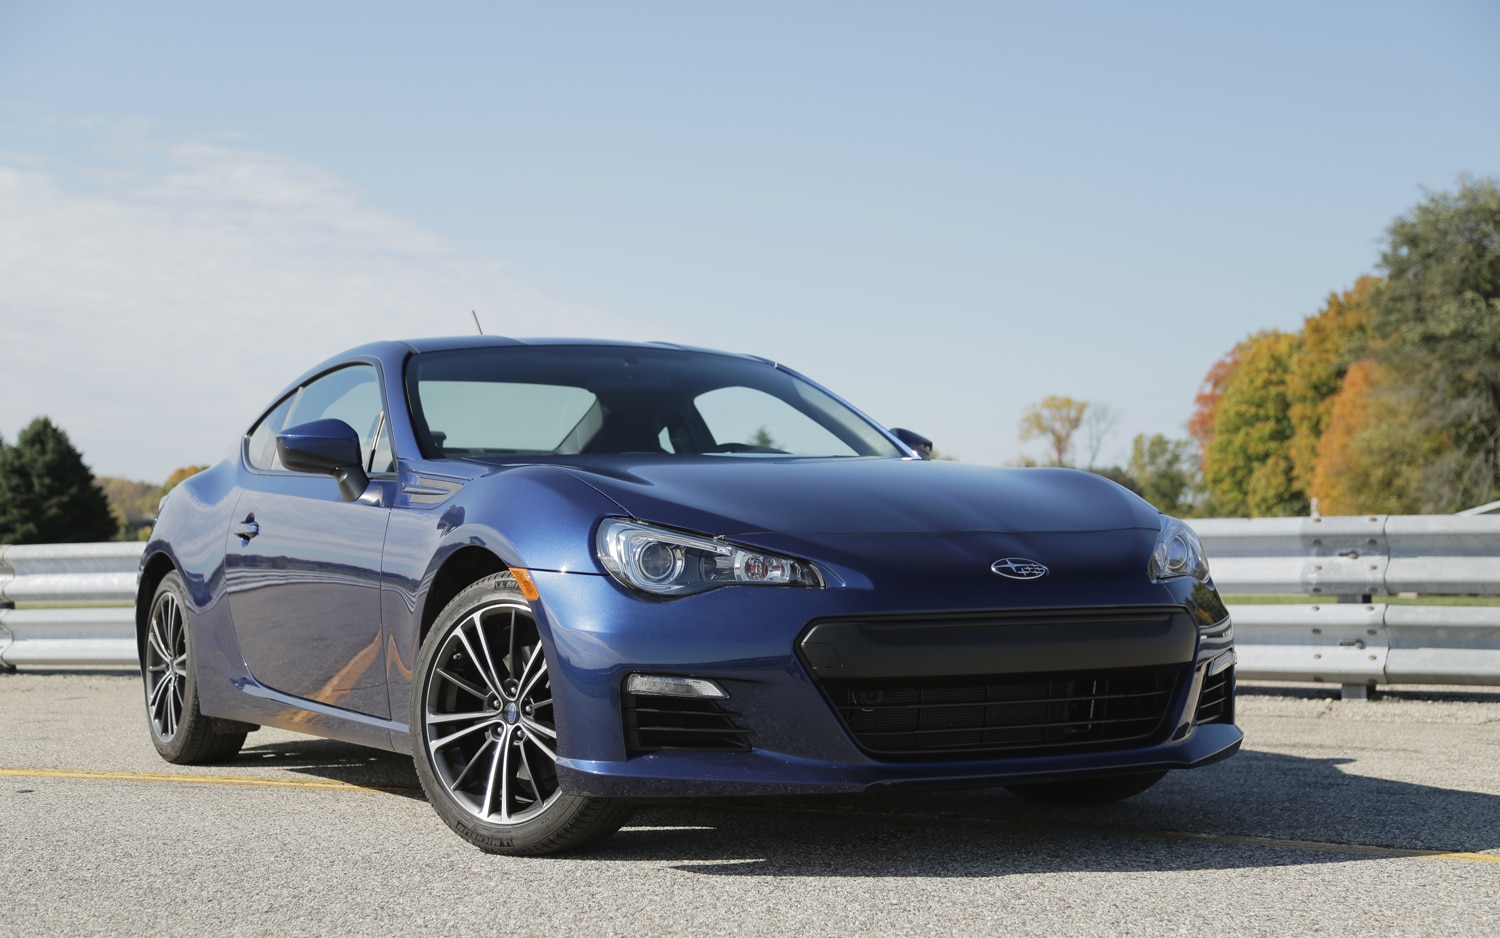 2013 Subaru BRZ Front Right View1